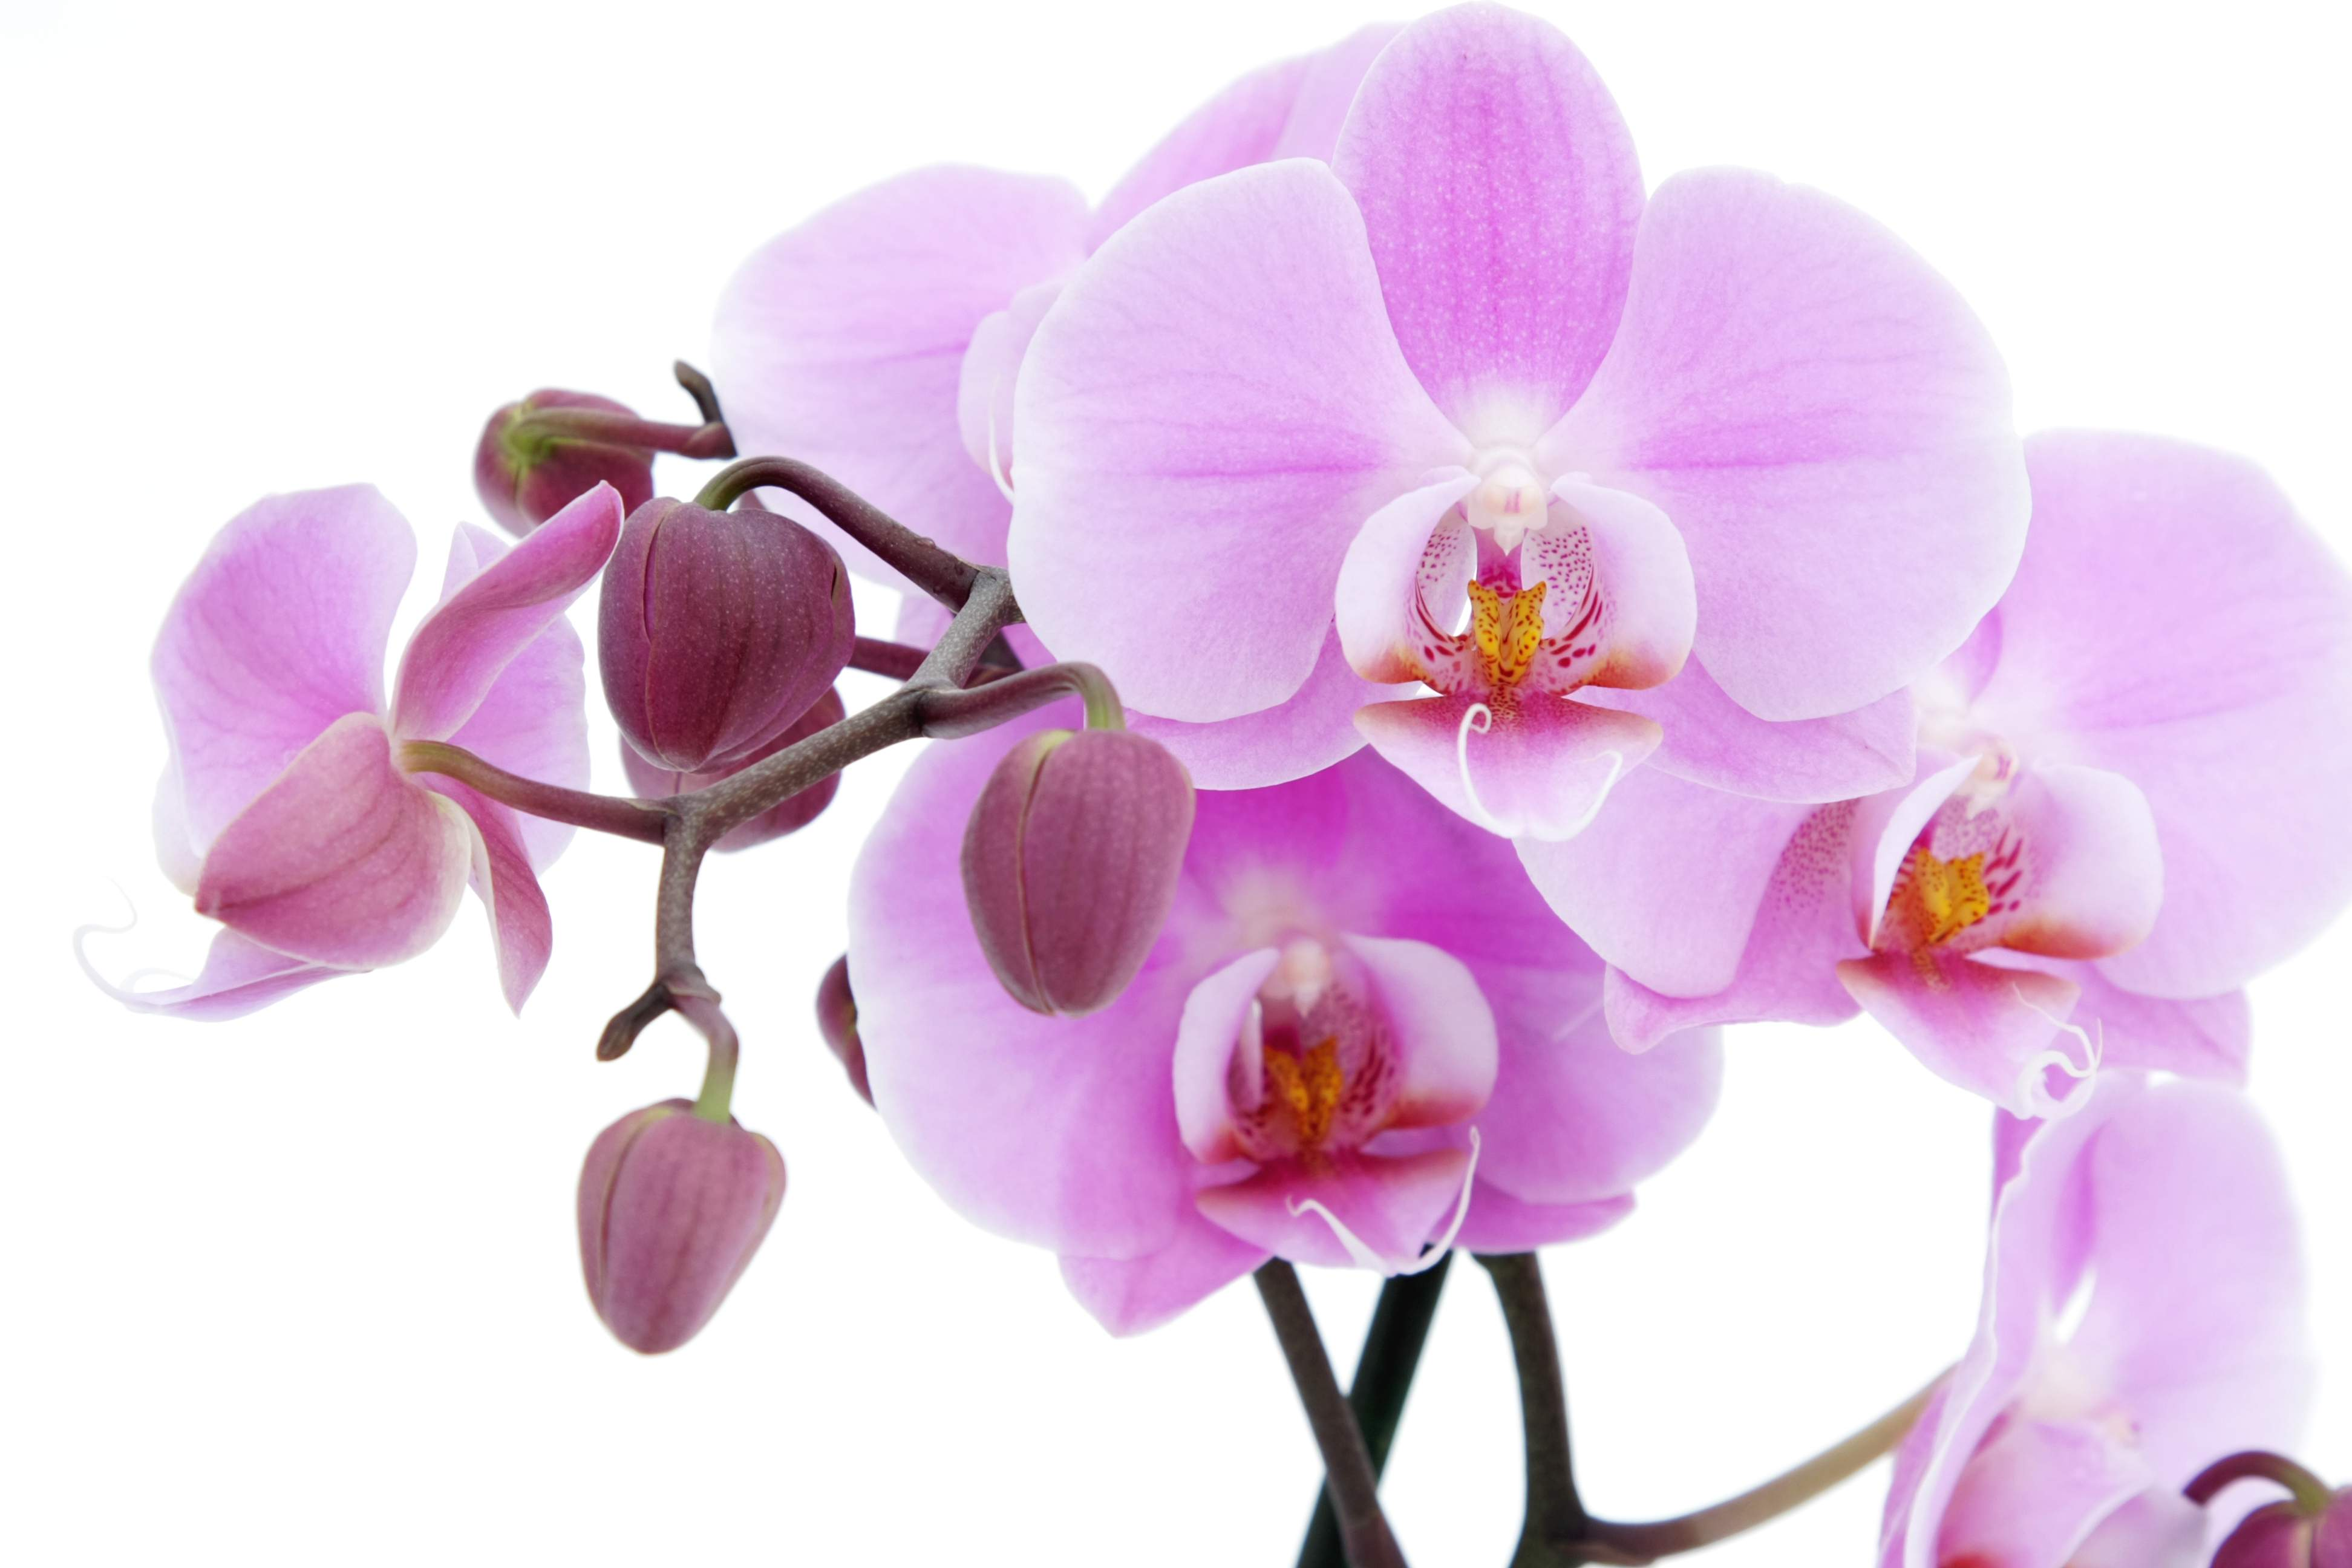 Orchid flower wallpapers wallpaper cave - White orchid flowers desktop wallpapers ...